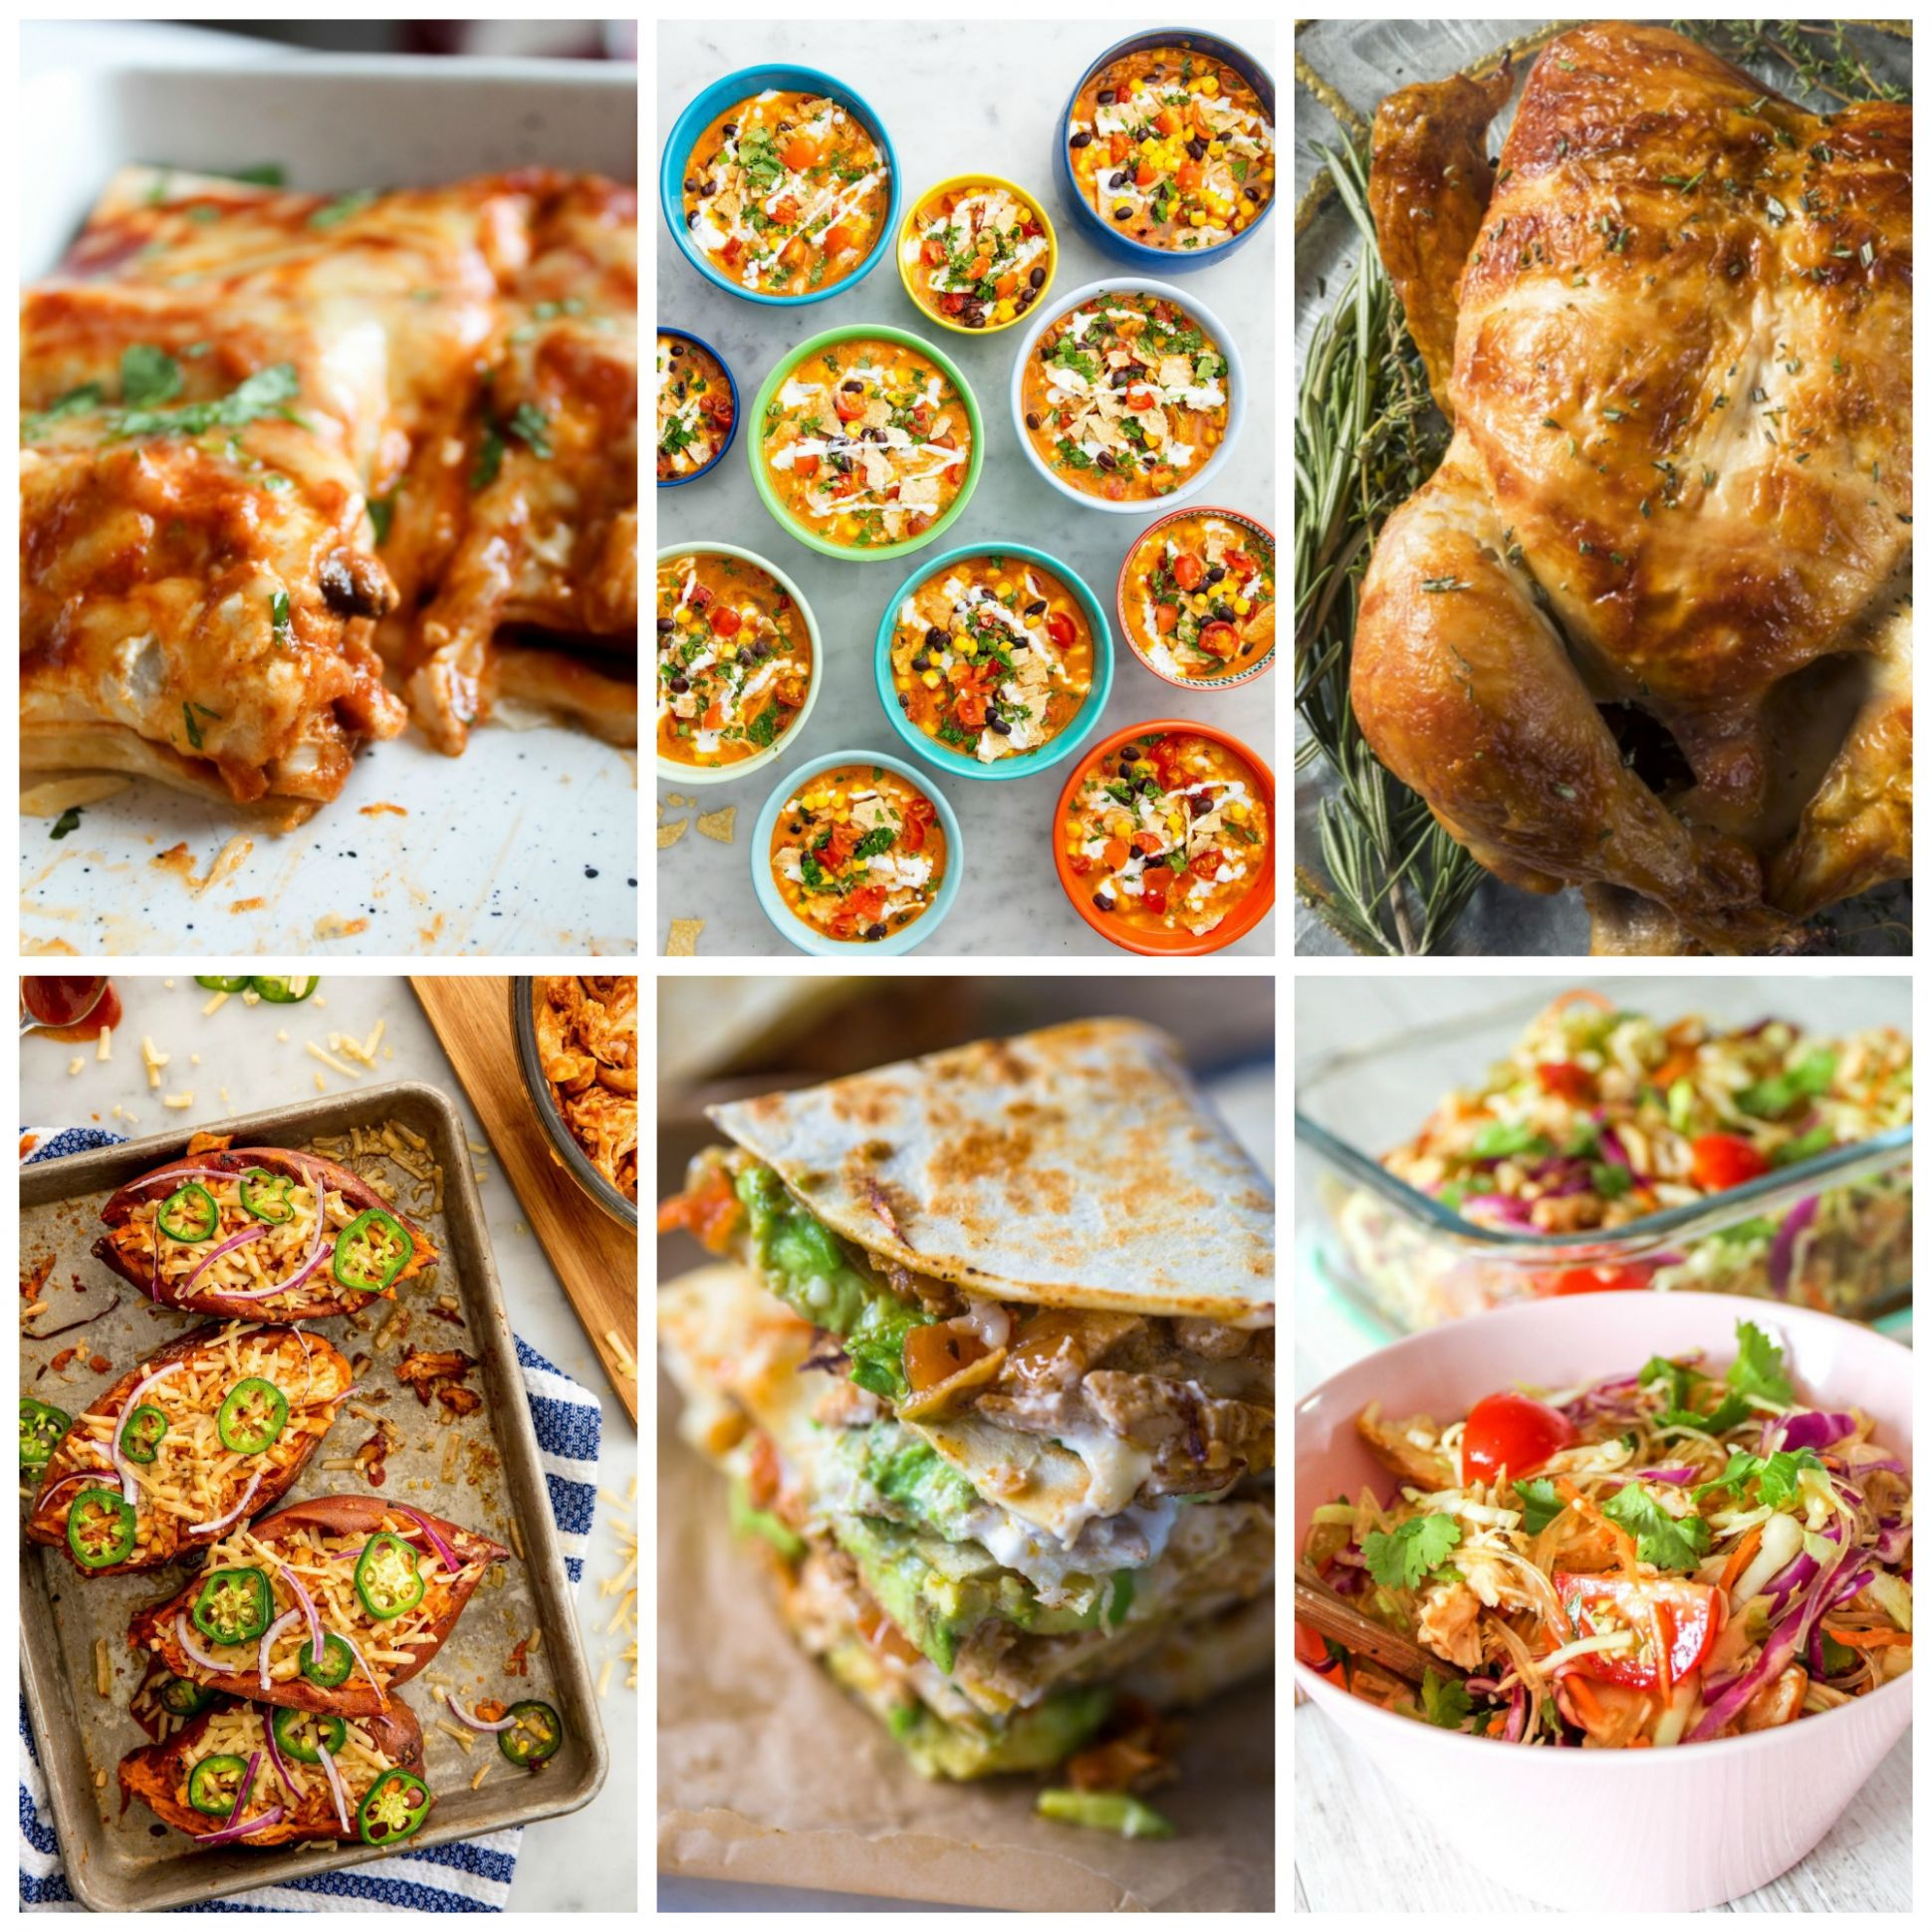 8 Healthy Meals to Make using a Rotisserie Chicken - Clean Eating ...